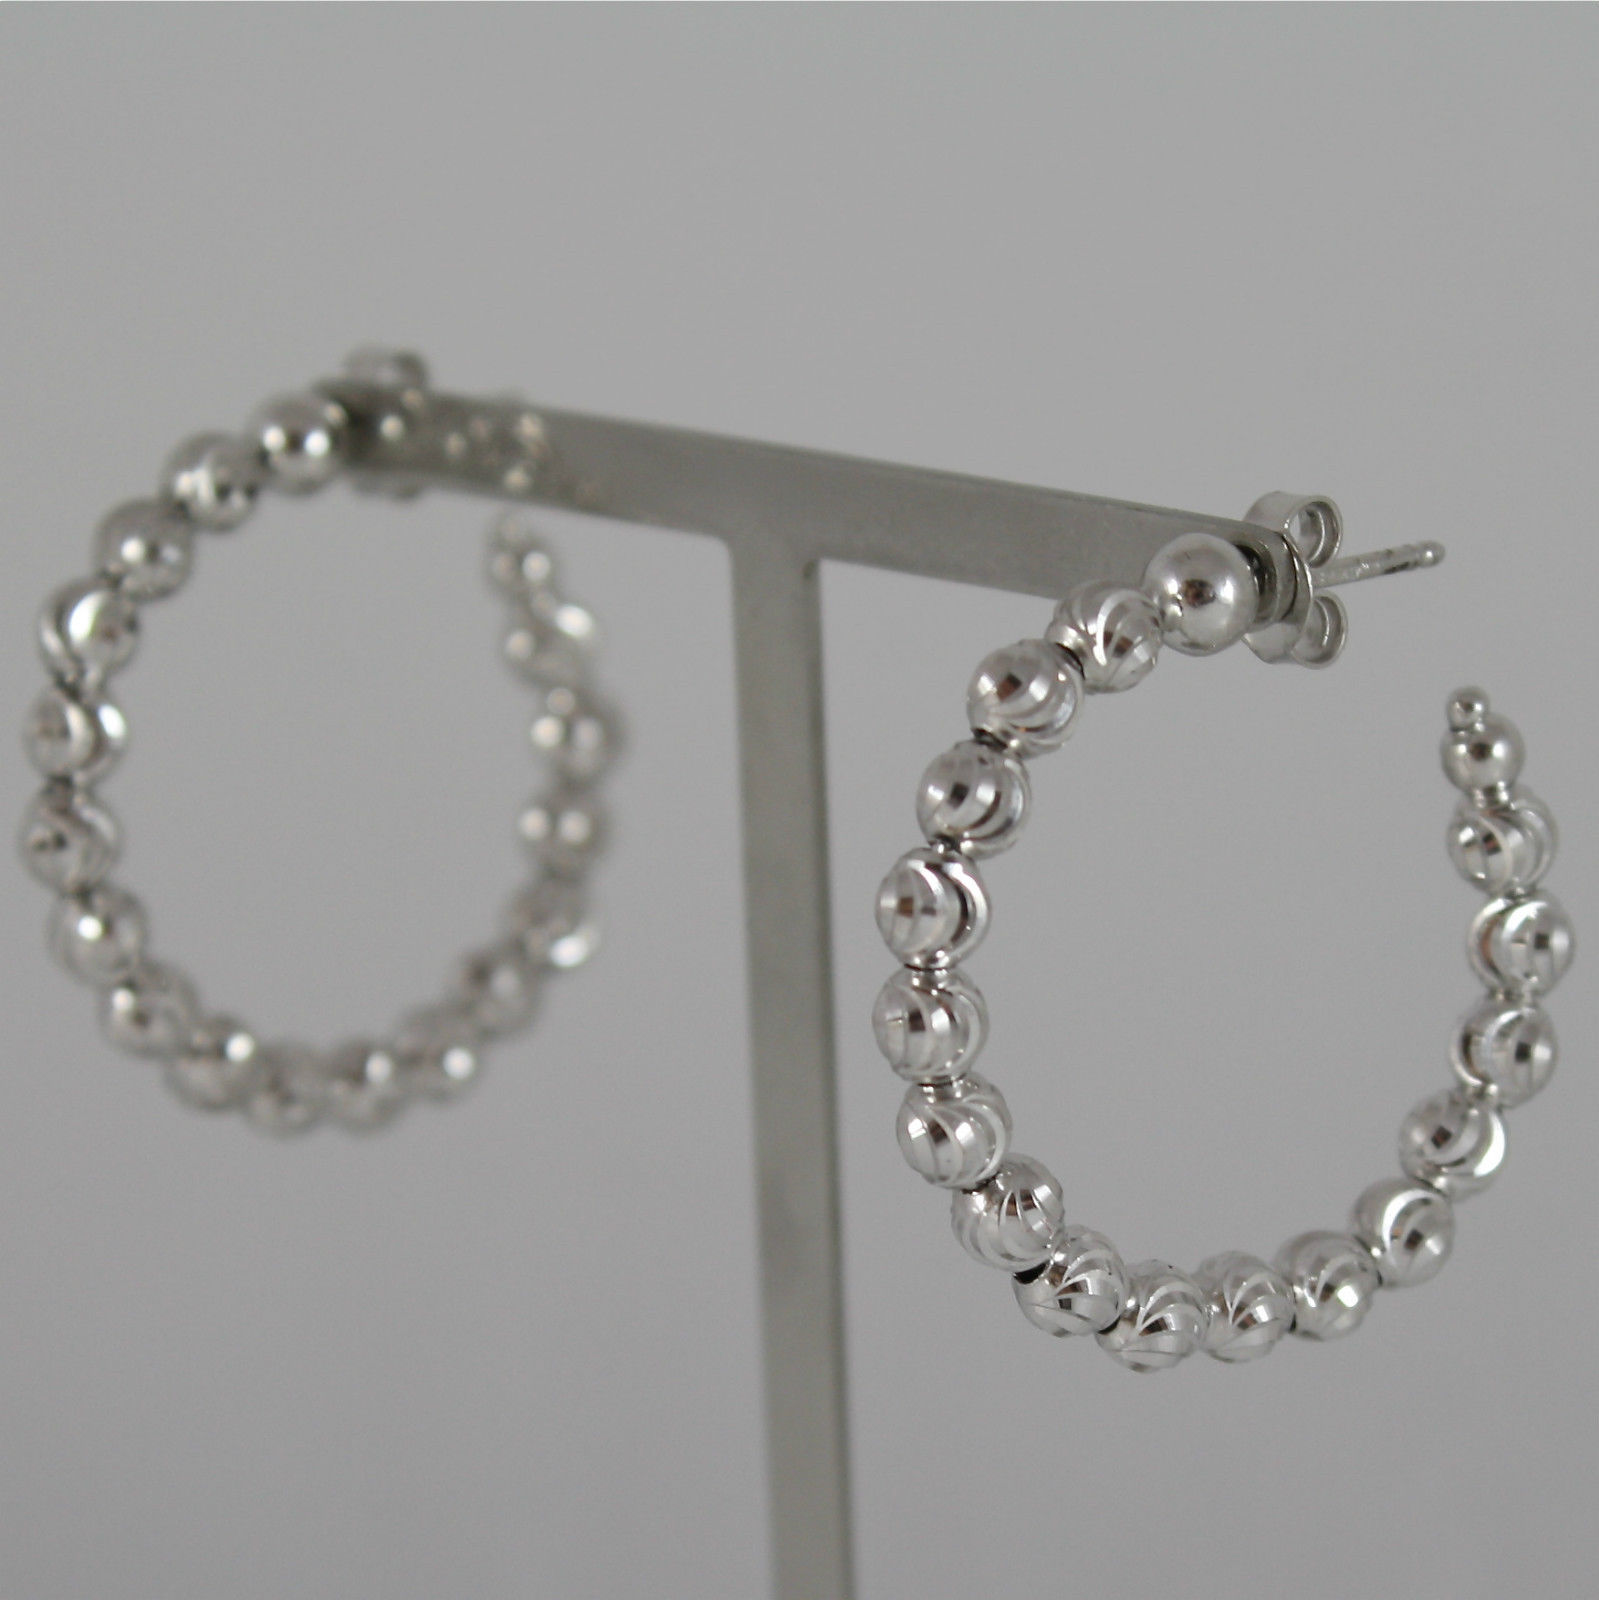 925 RHODIUM SILVER OFFICINA BERNARDI EARRINGS, FACETED BALLS MADE IN ITALY